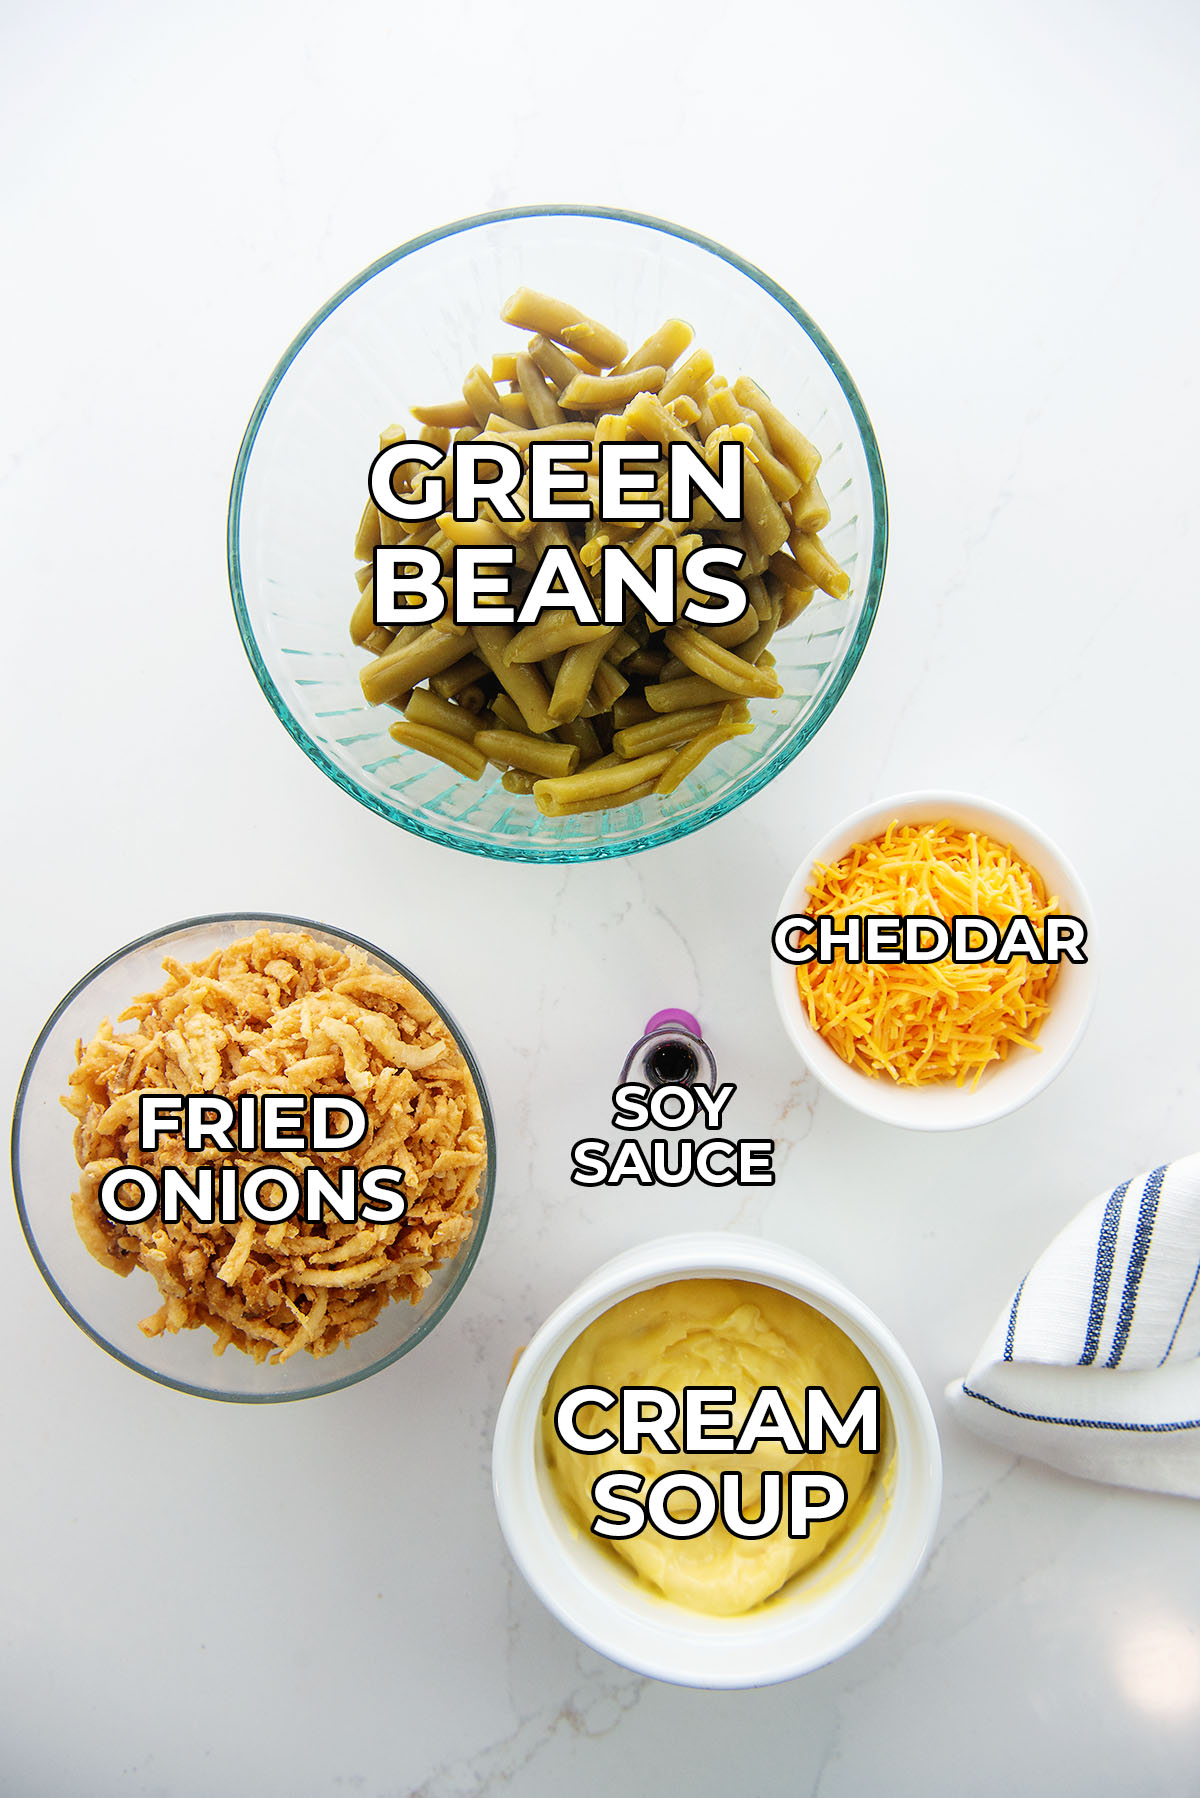 Ingredients for green bean casserole spread out on a countertop.